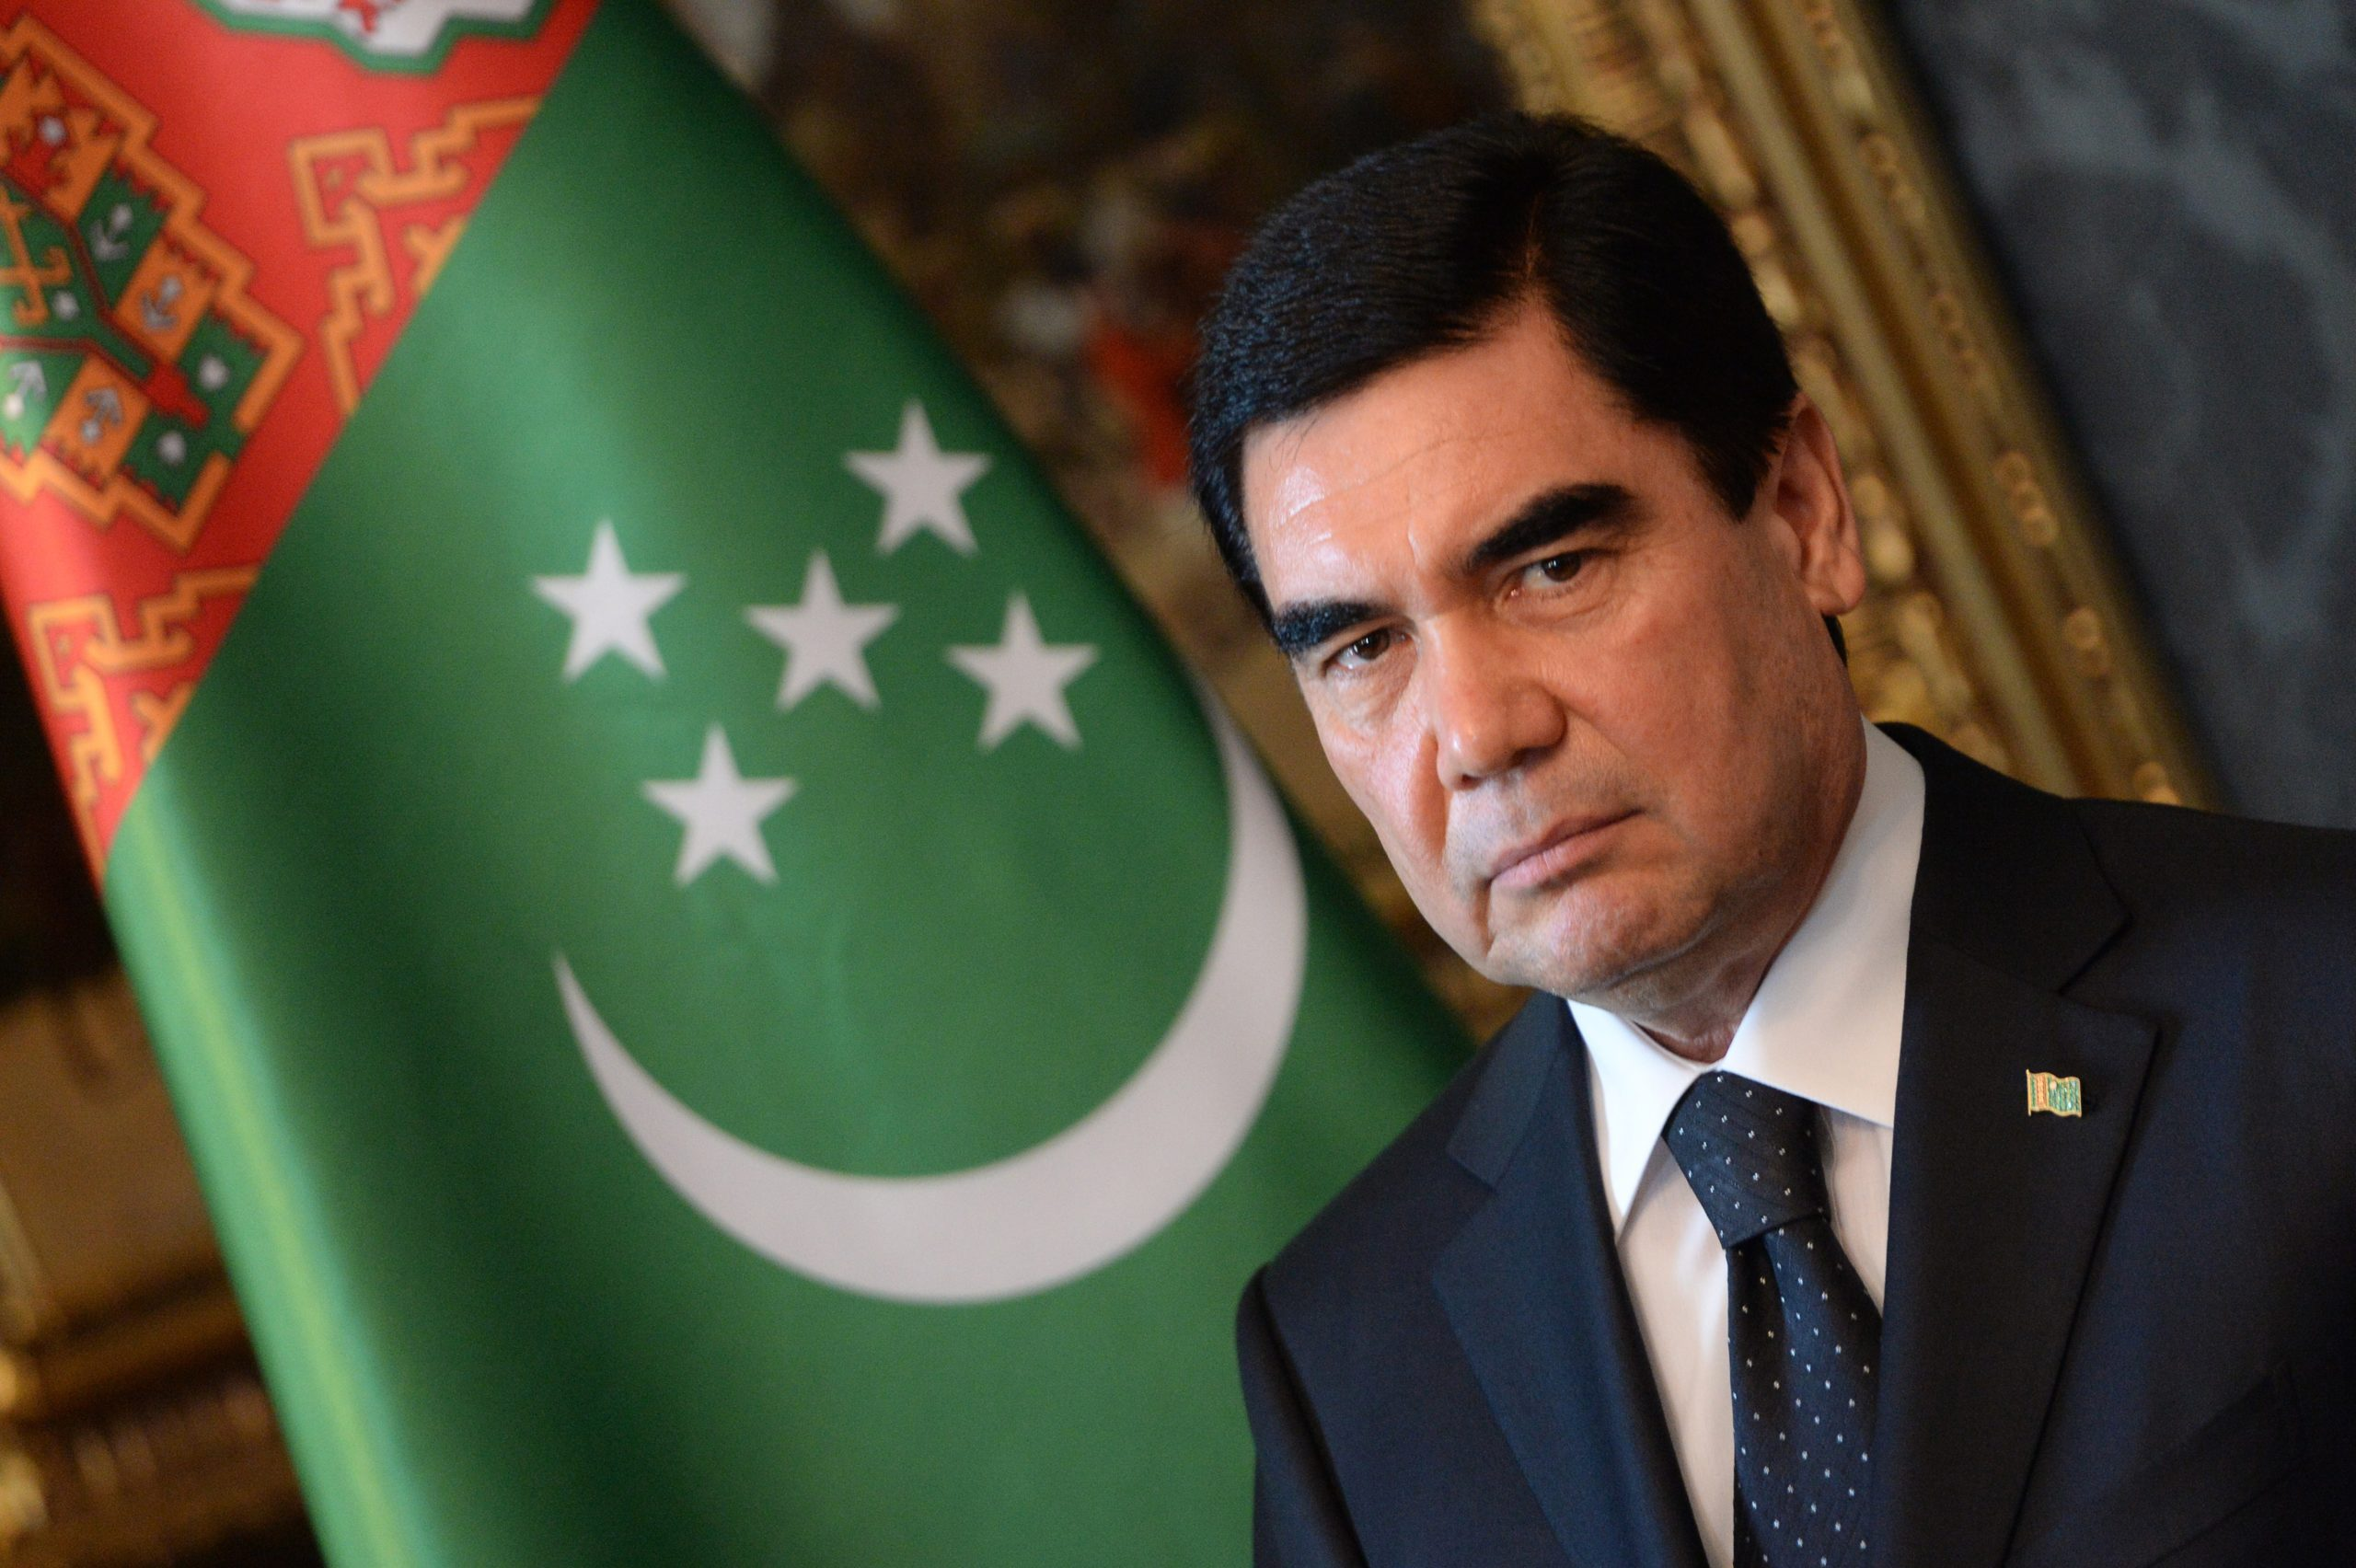 Turkmenistan's President Gurbanguly Berdimuhamedov is pictured during a signing ceremony in the Blue Hall at the presidential palace in Budapest on June 18, 2014. Berdimuhamedov is on a two-day visit to Hungary. AFP PHOTO / ATTILA KISBENEDEK (Photo credit should read ATTILA KISBENEDEK/AFP via Getty Images)